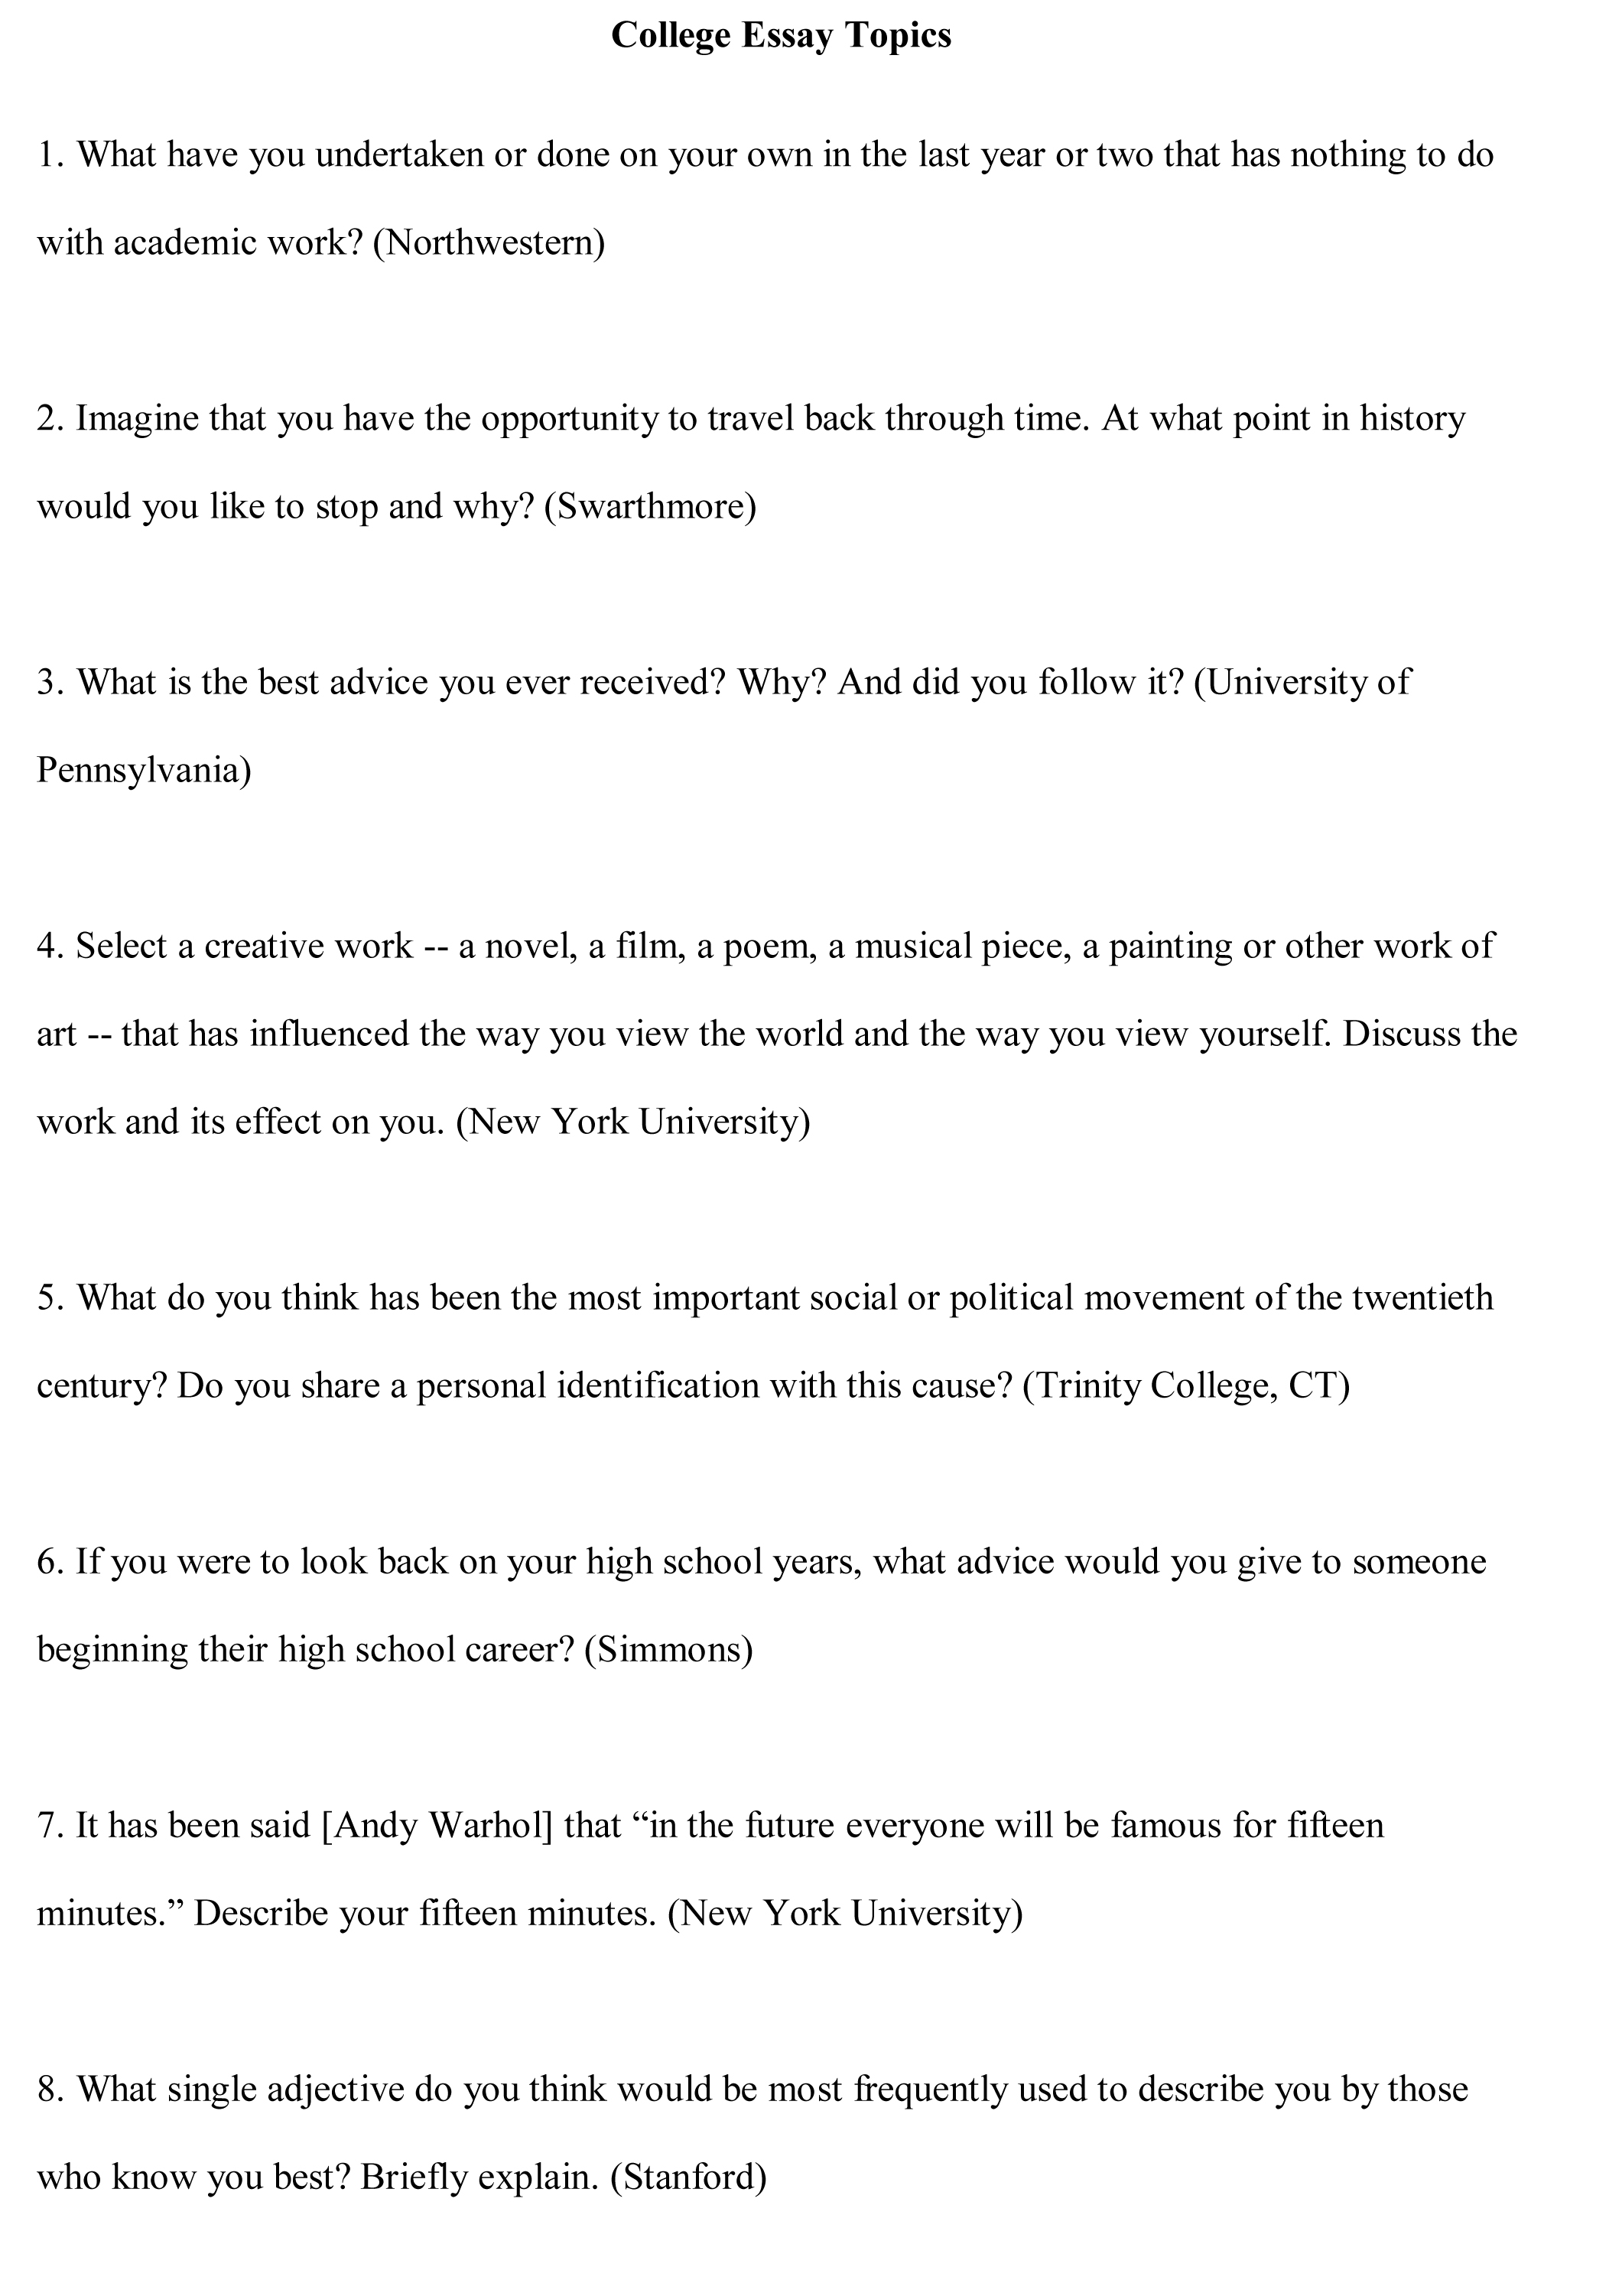 008 Essay Example College Topics Free Sample1 How To Excellent Essays For 4th Grade Write Scholarships Full